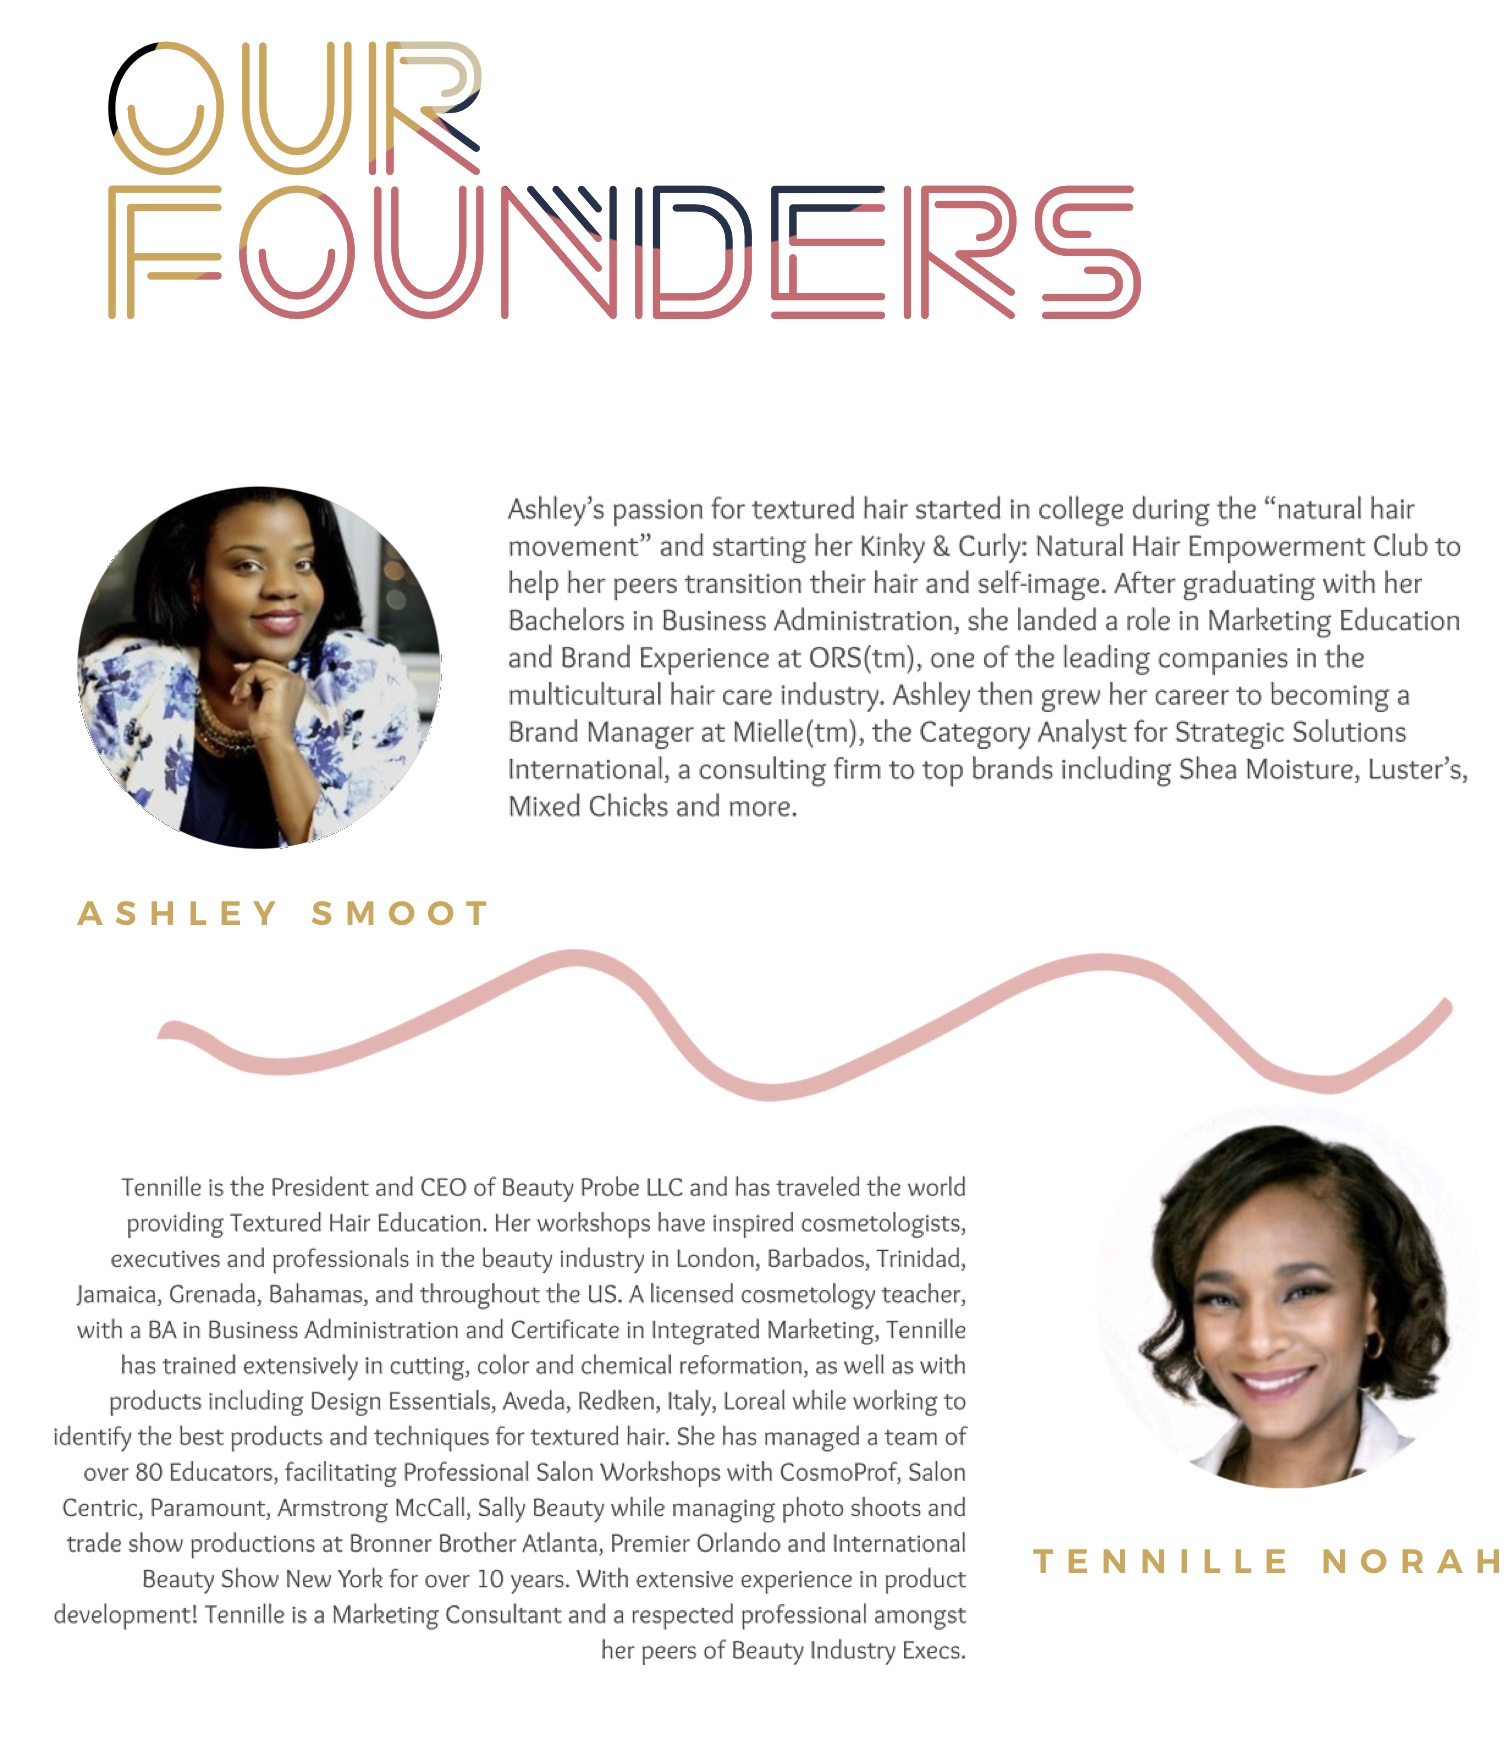 Founders - Ashley Smoot & Tennille Norah